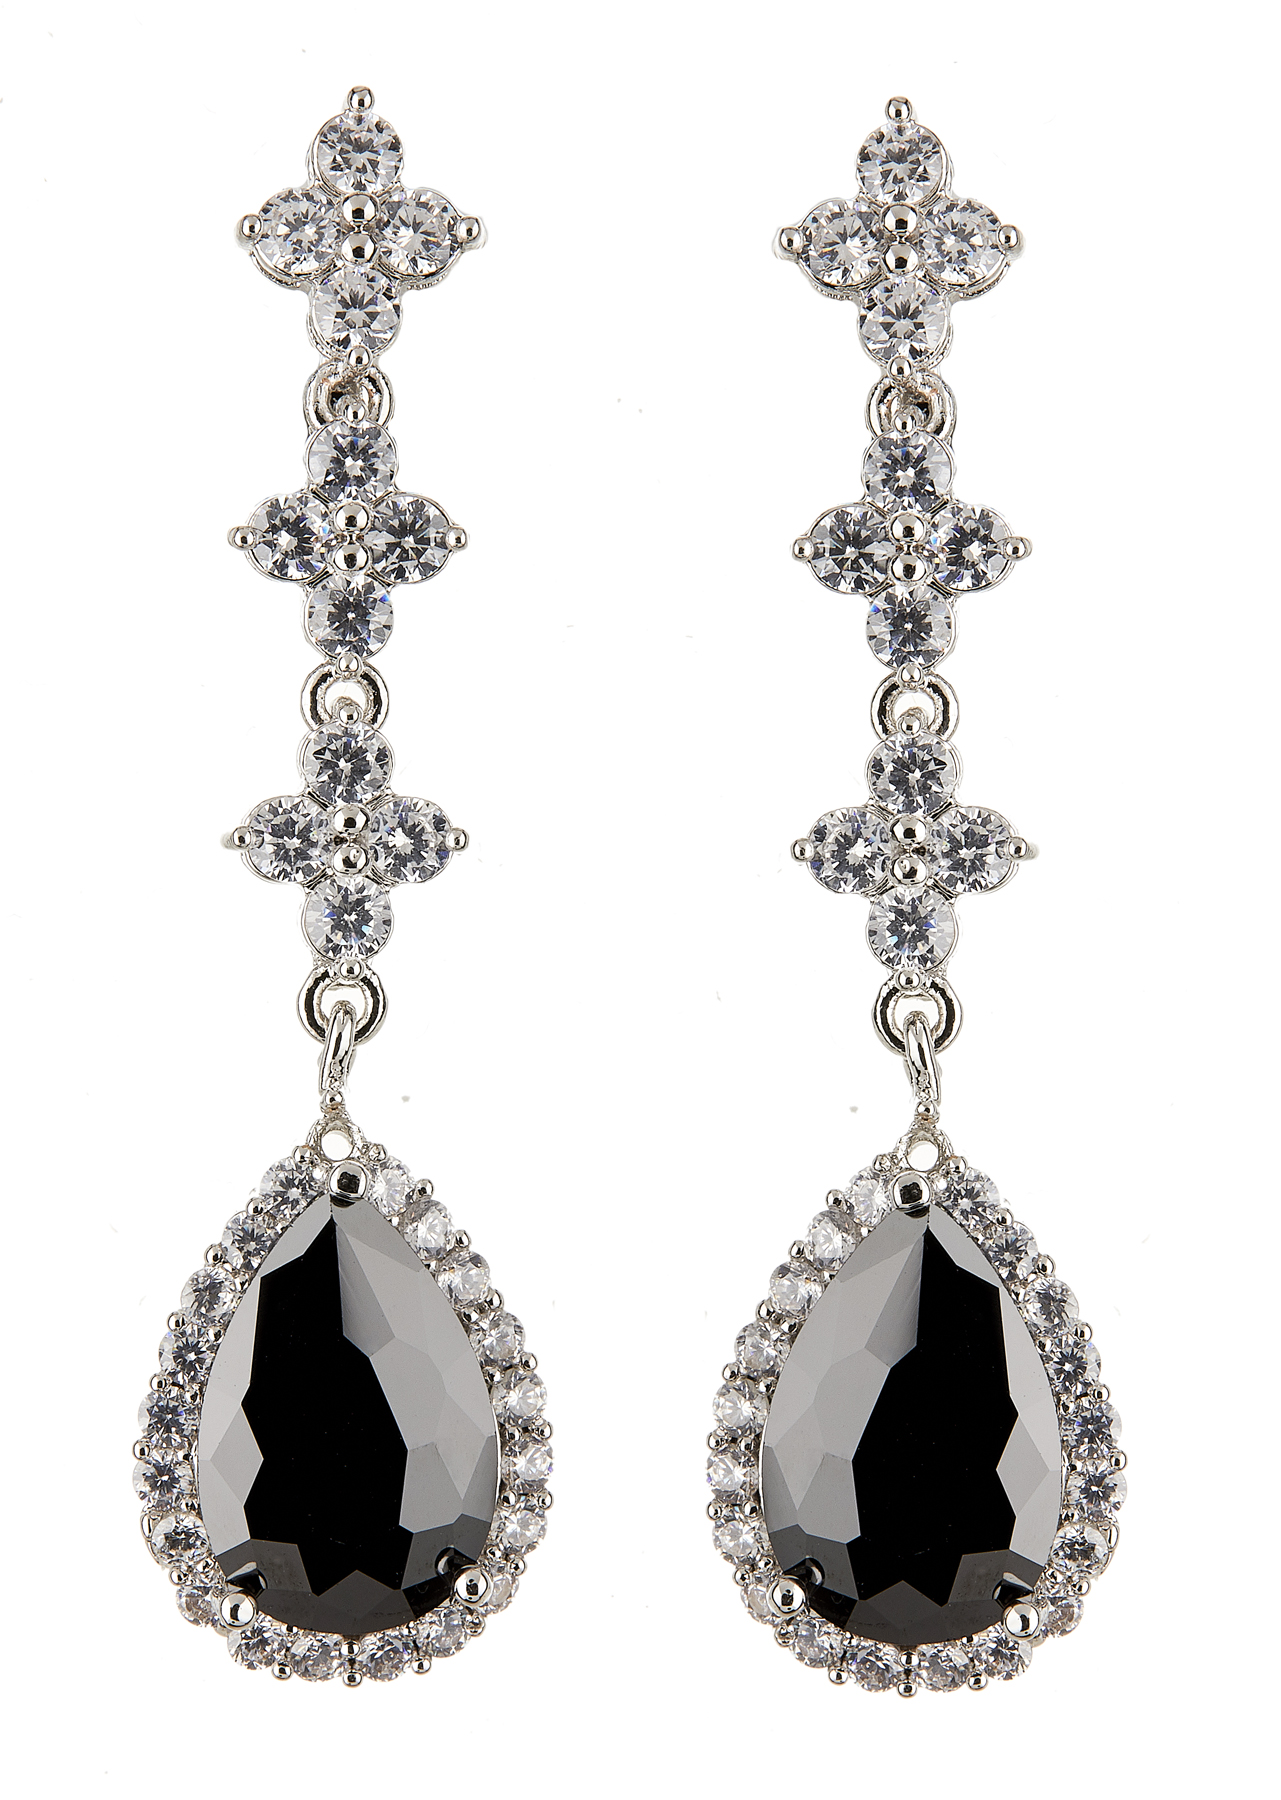 Clip On Earrings - Najam - silver dangle earring with a black cubic zirconia stone and clear crystals